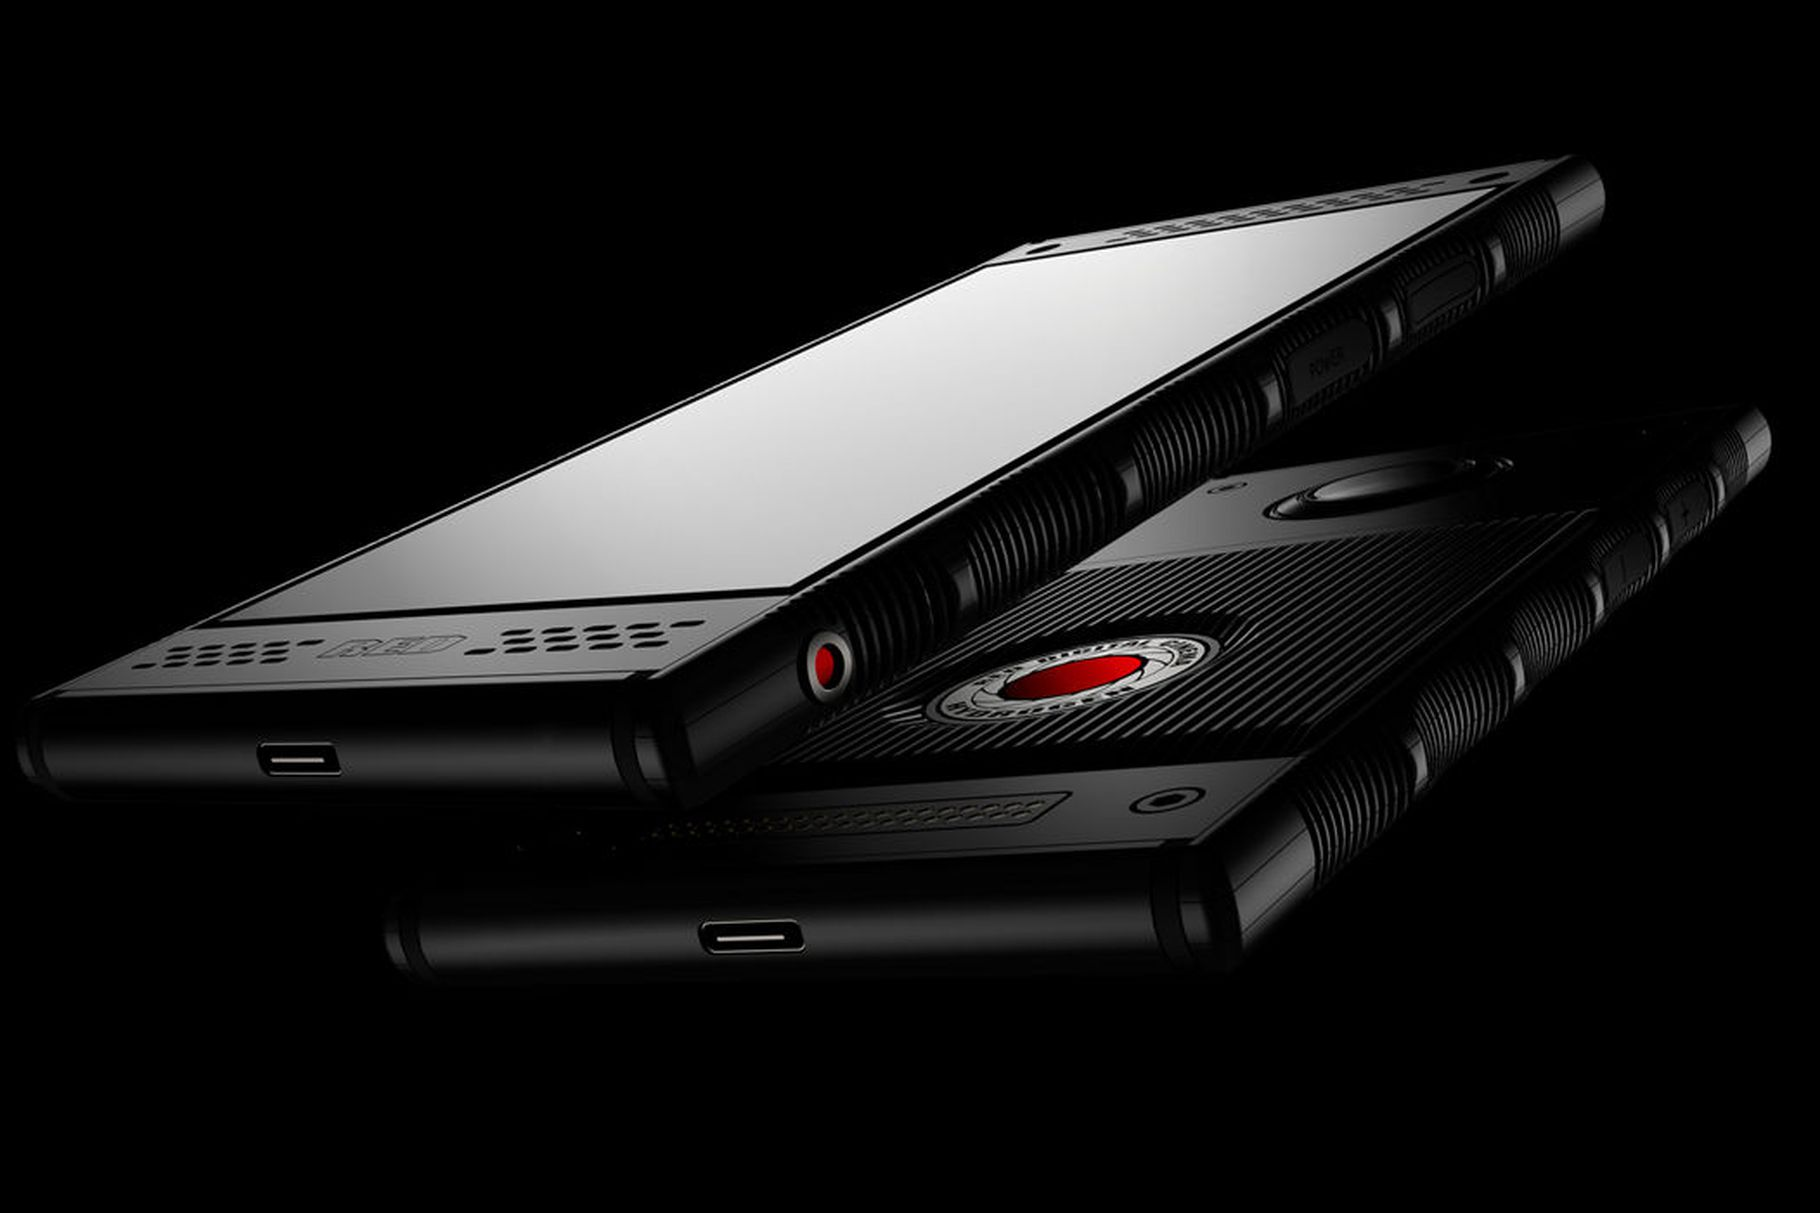 RED's Hydrogen One phone with holographic display is coming